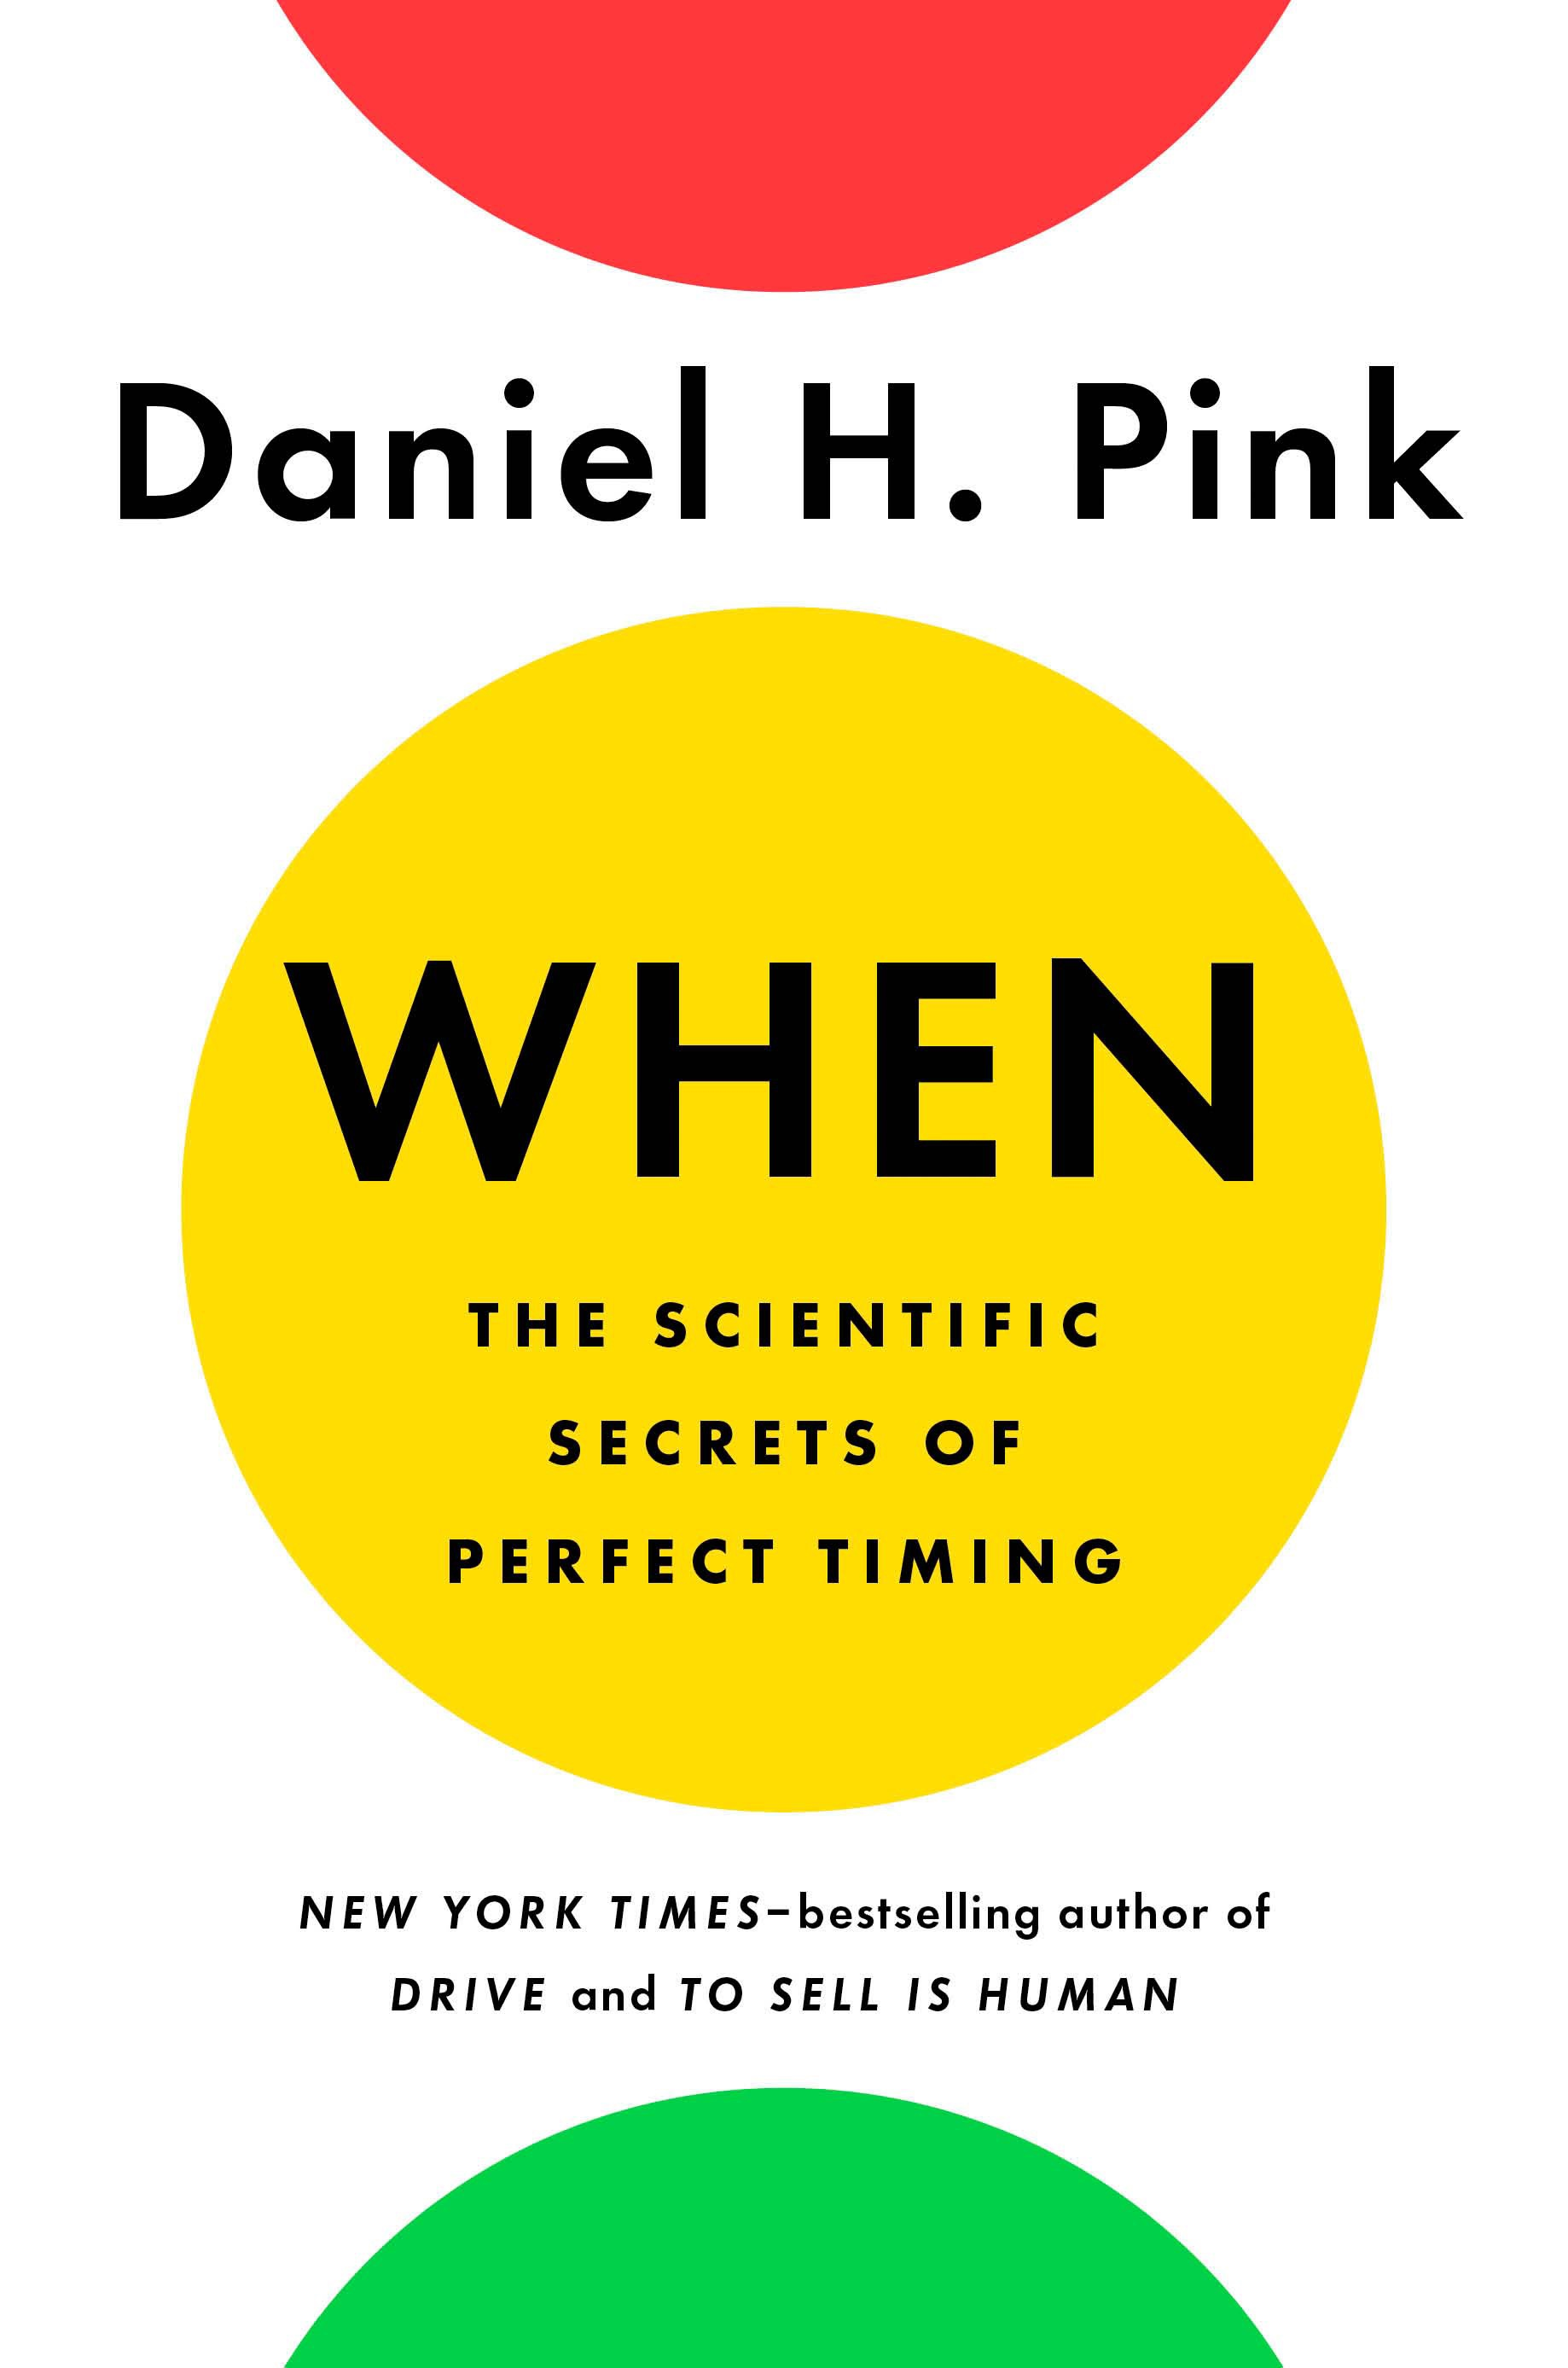 When the scientific secrets of perfect timing by Daniel H. Pink, book cover..